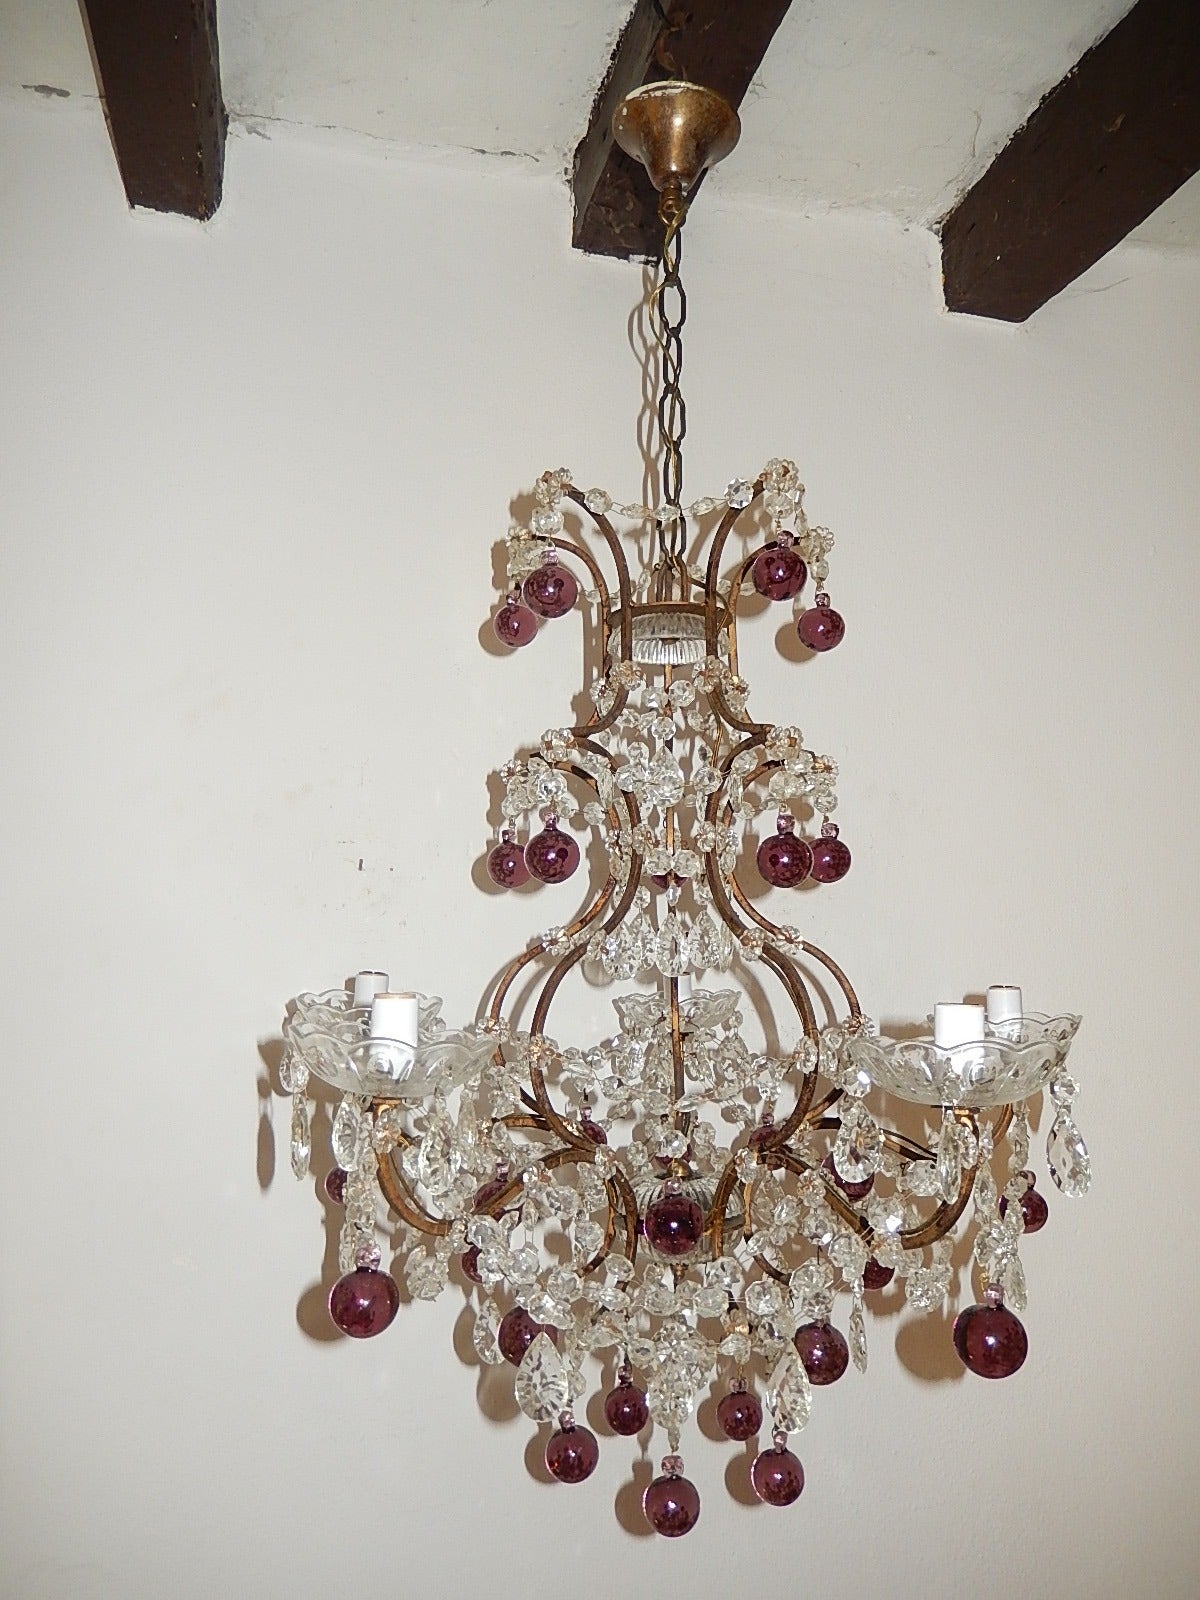 Housing 5 lights, sitting in crystal bobeches dripping with rare cut prisms.  Tiers of crystal swags and 30 rare short bulbous Murano balls in amethyst.  Adding another 12 inches of original chain and canopy.  Free priority shipping from Italy.